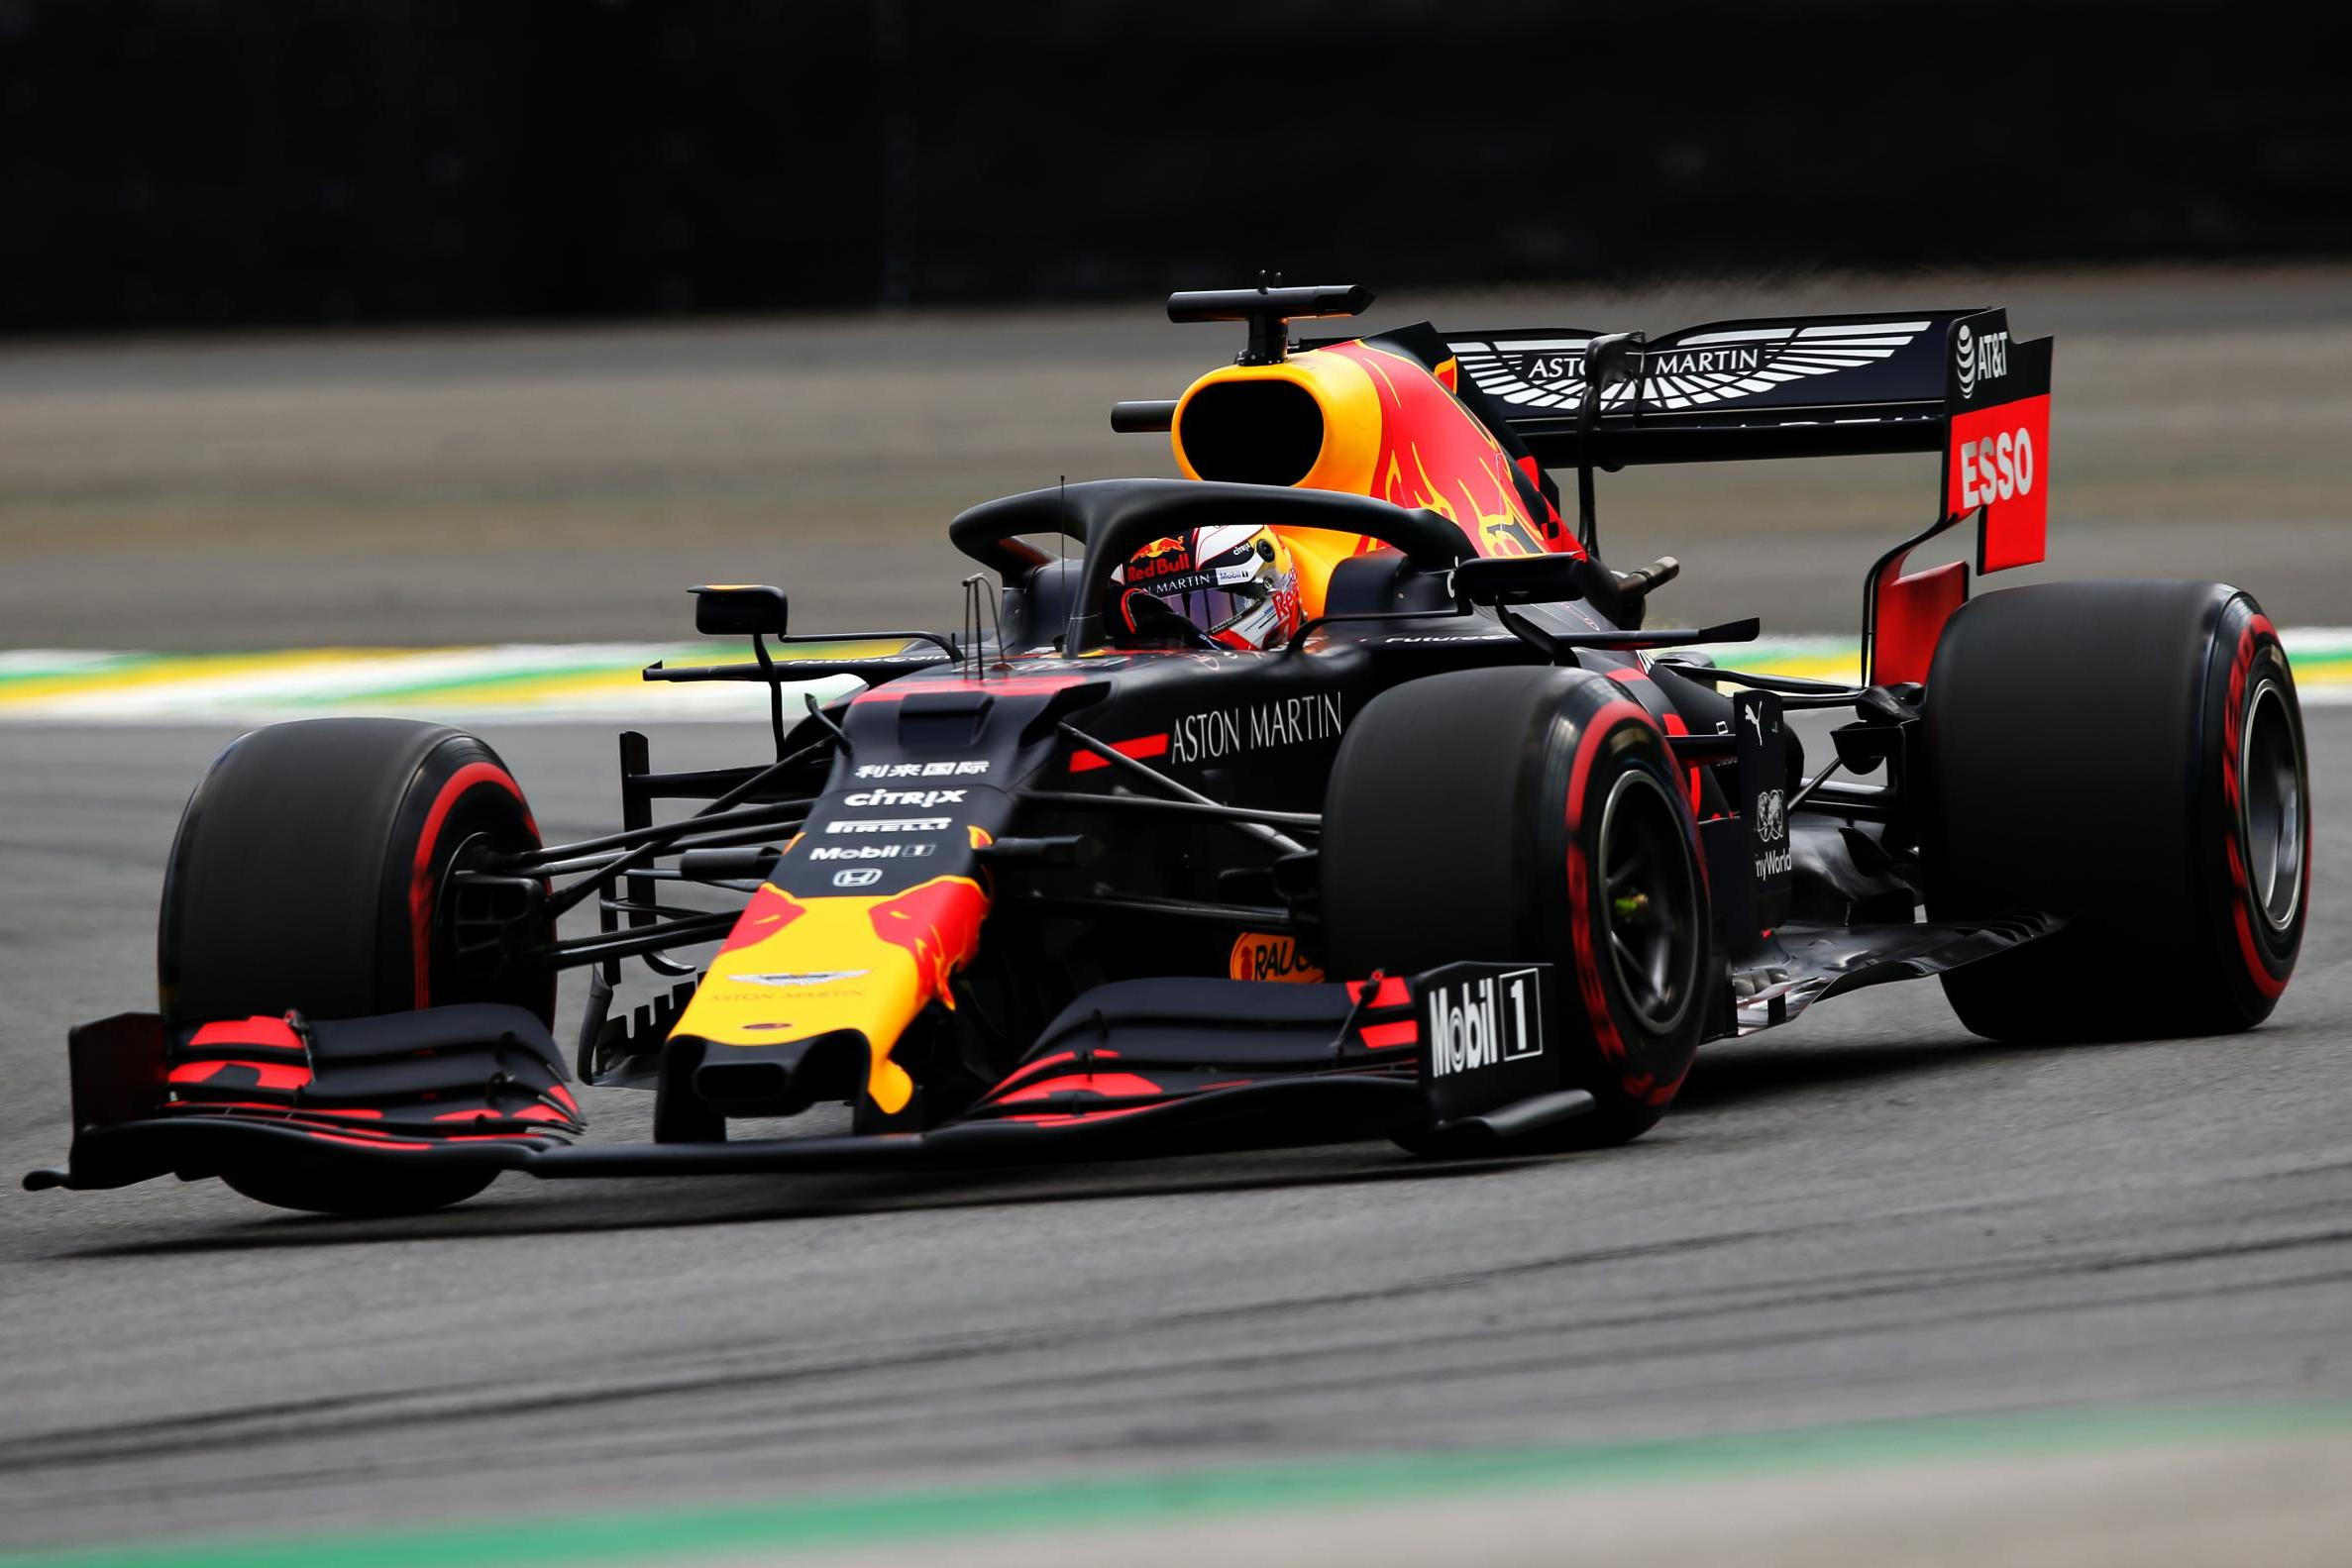 Max Verstappen to Stay with Red Bull Till 2023 - Newslibre